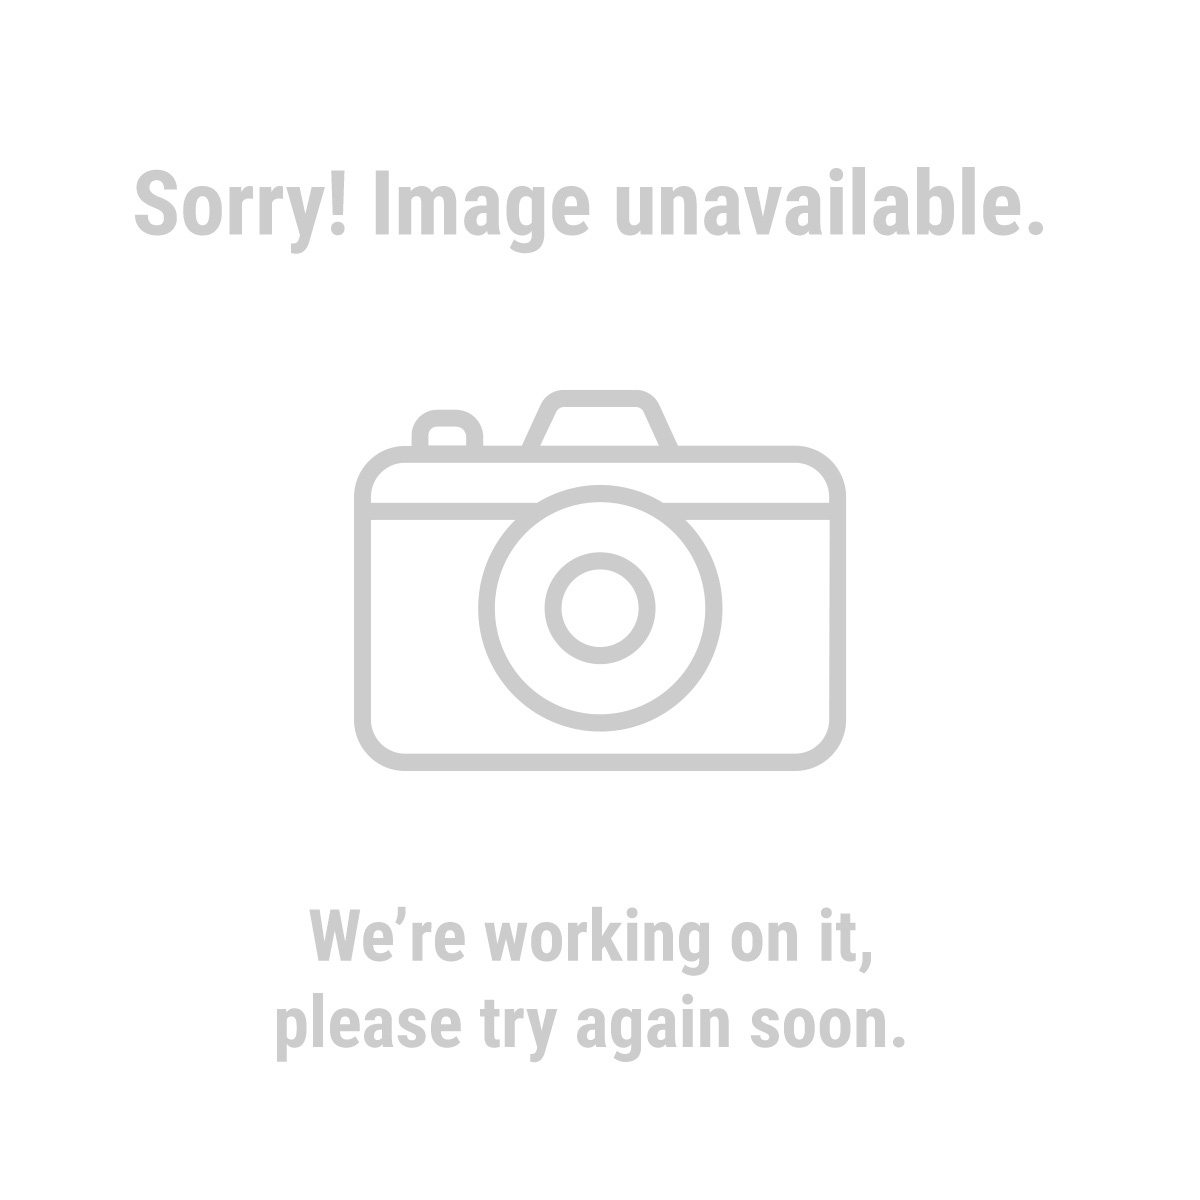 Pittsburgh Professional 69516 10 Piece 1 in. Drive SAE Impact Socket Set